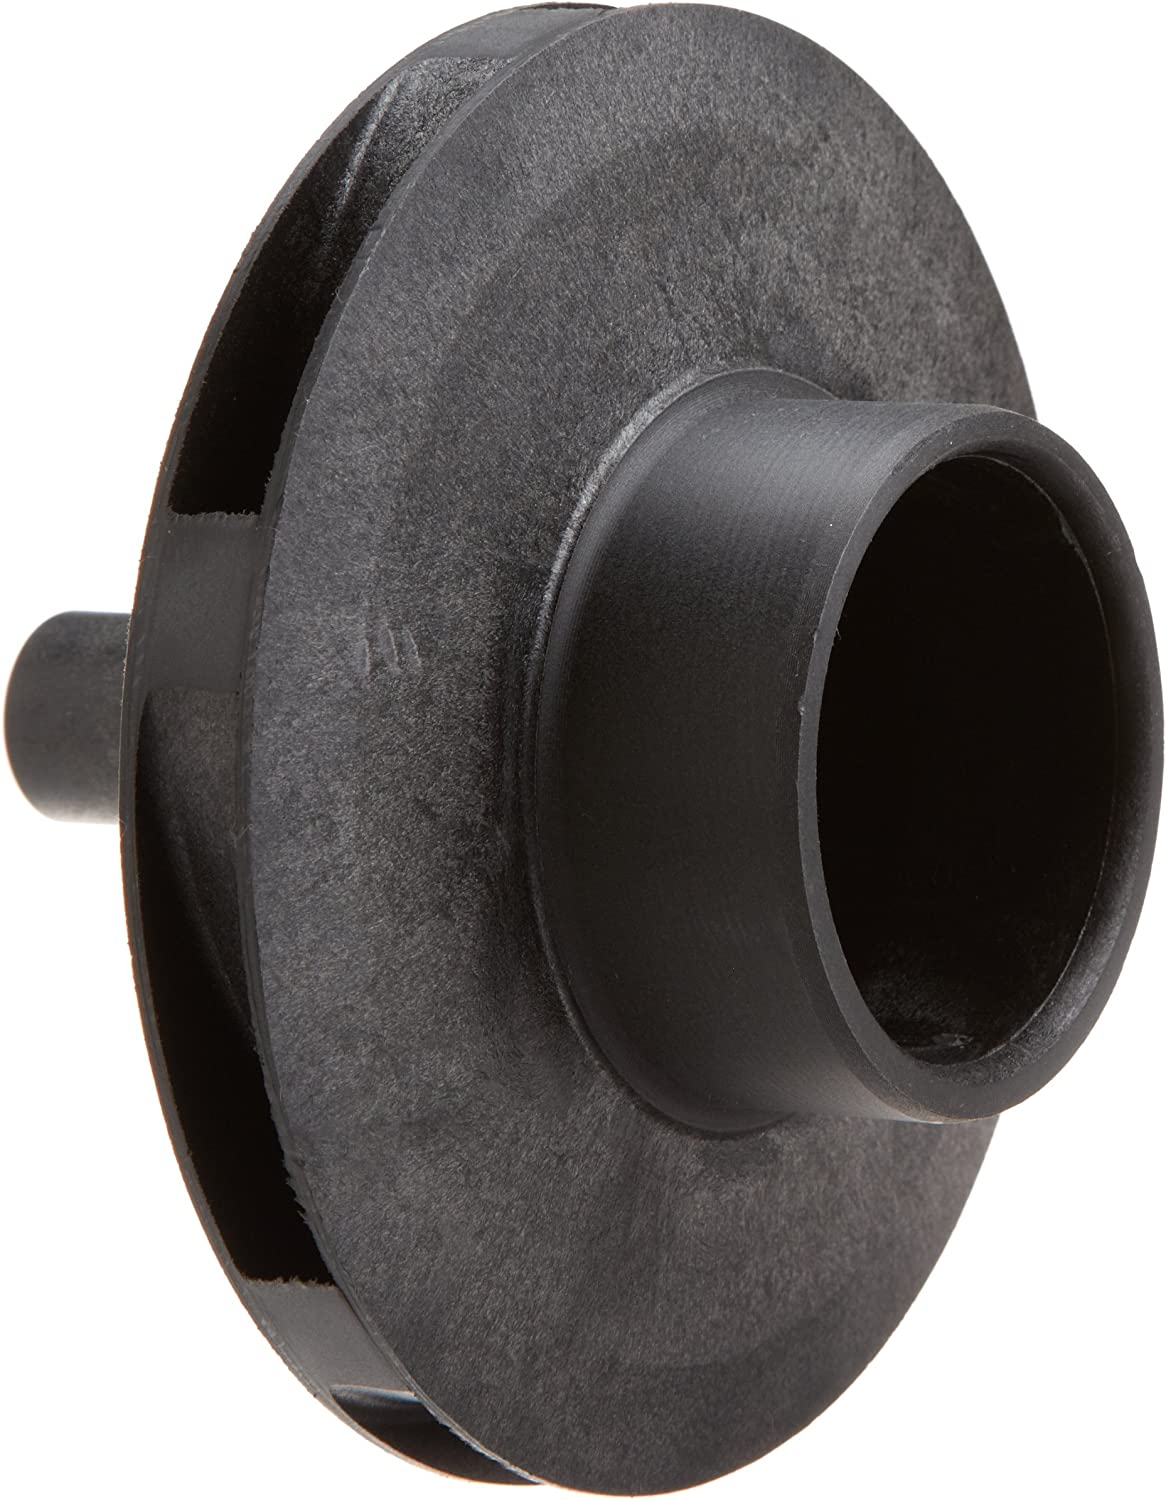 Pentair C105-238PEC 1-1/2 HP Single Phase Impeller Assembly Replacement Max-E-Pro 5P6R6F-211 Centrifugal Pool and Spa Pump